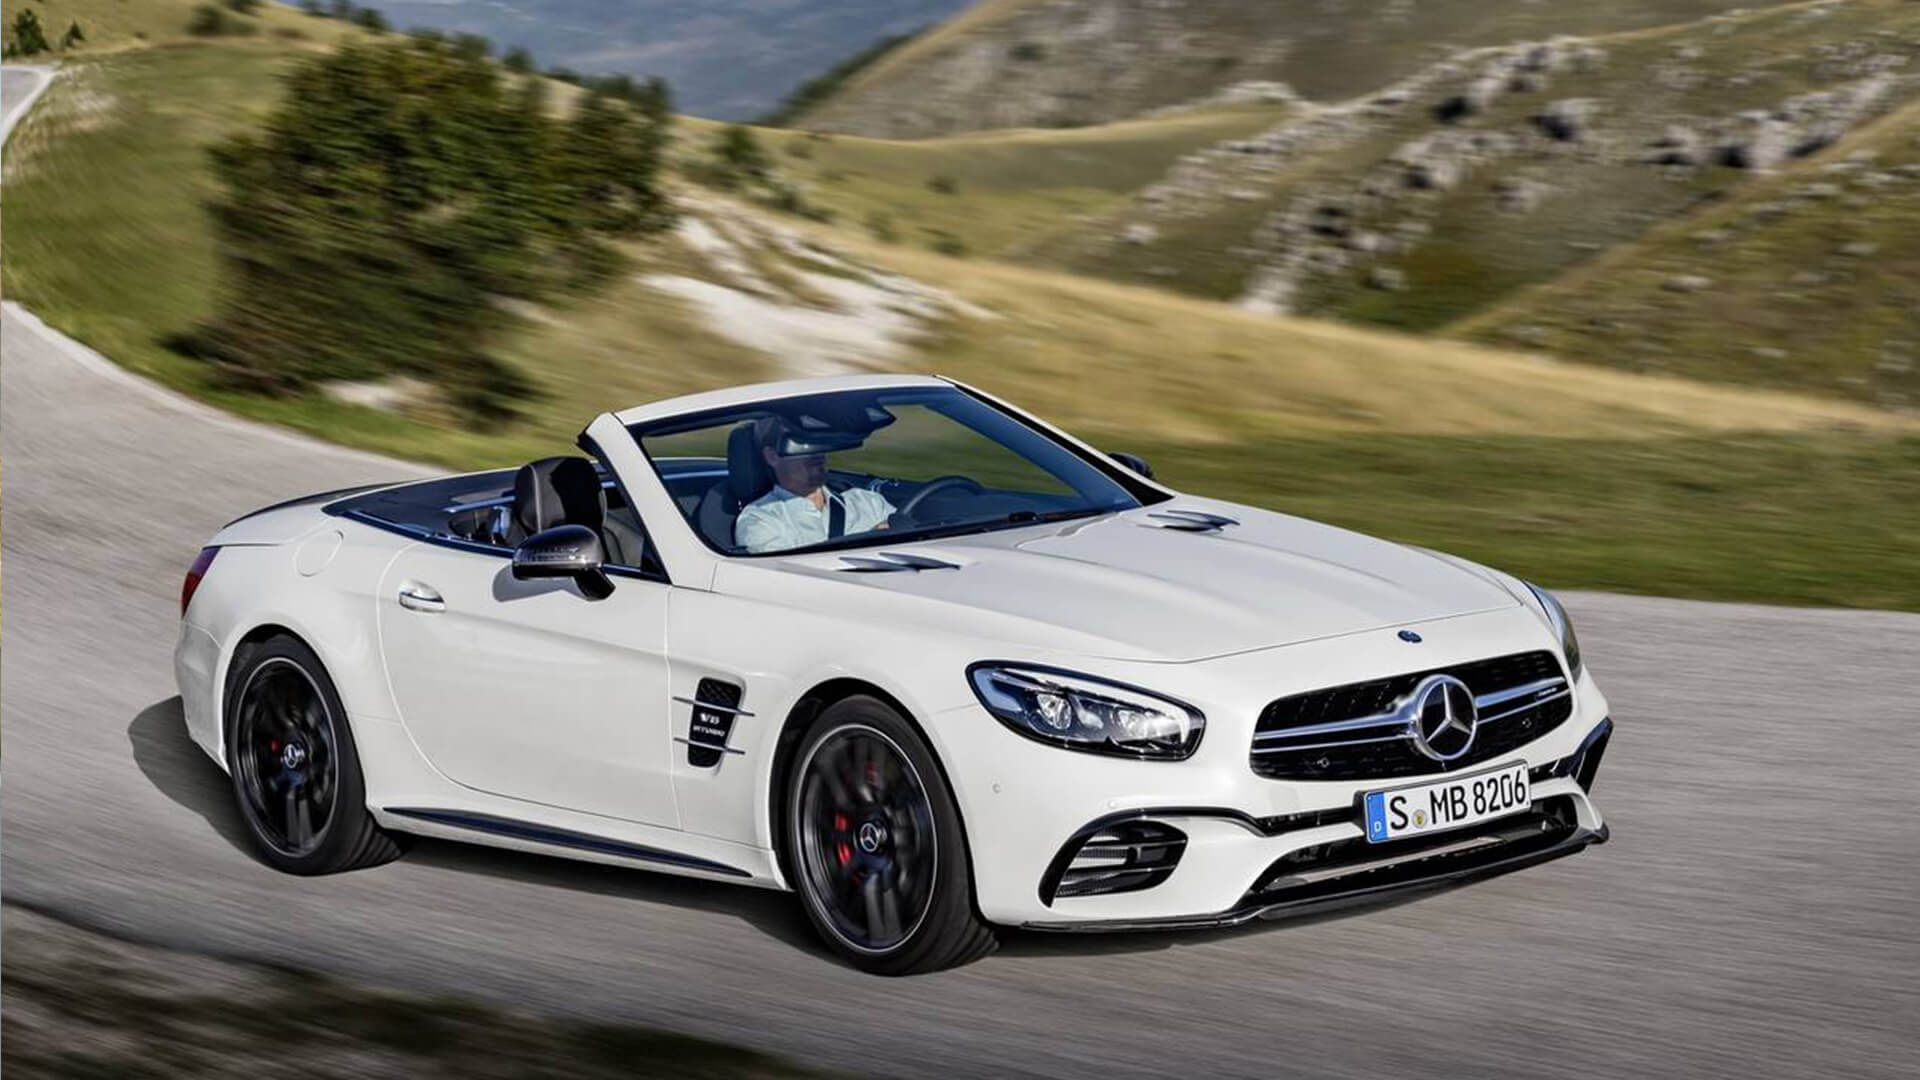 Luxury sports cars 2016 mercedes benz sl class pho2car for Cars of mercedes benz